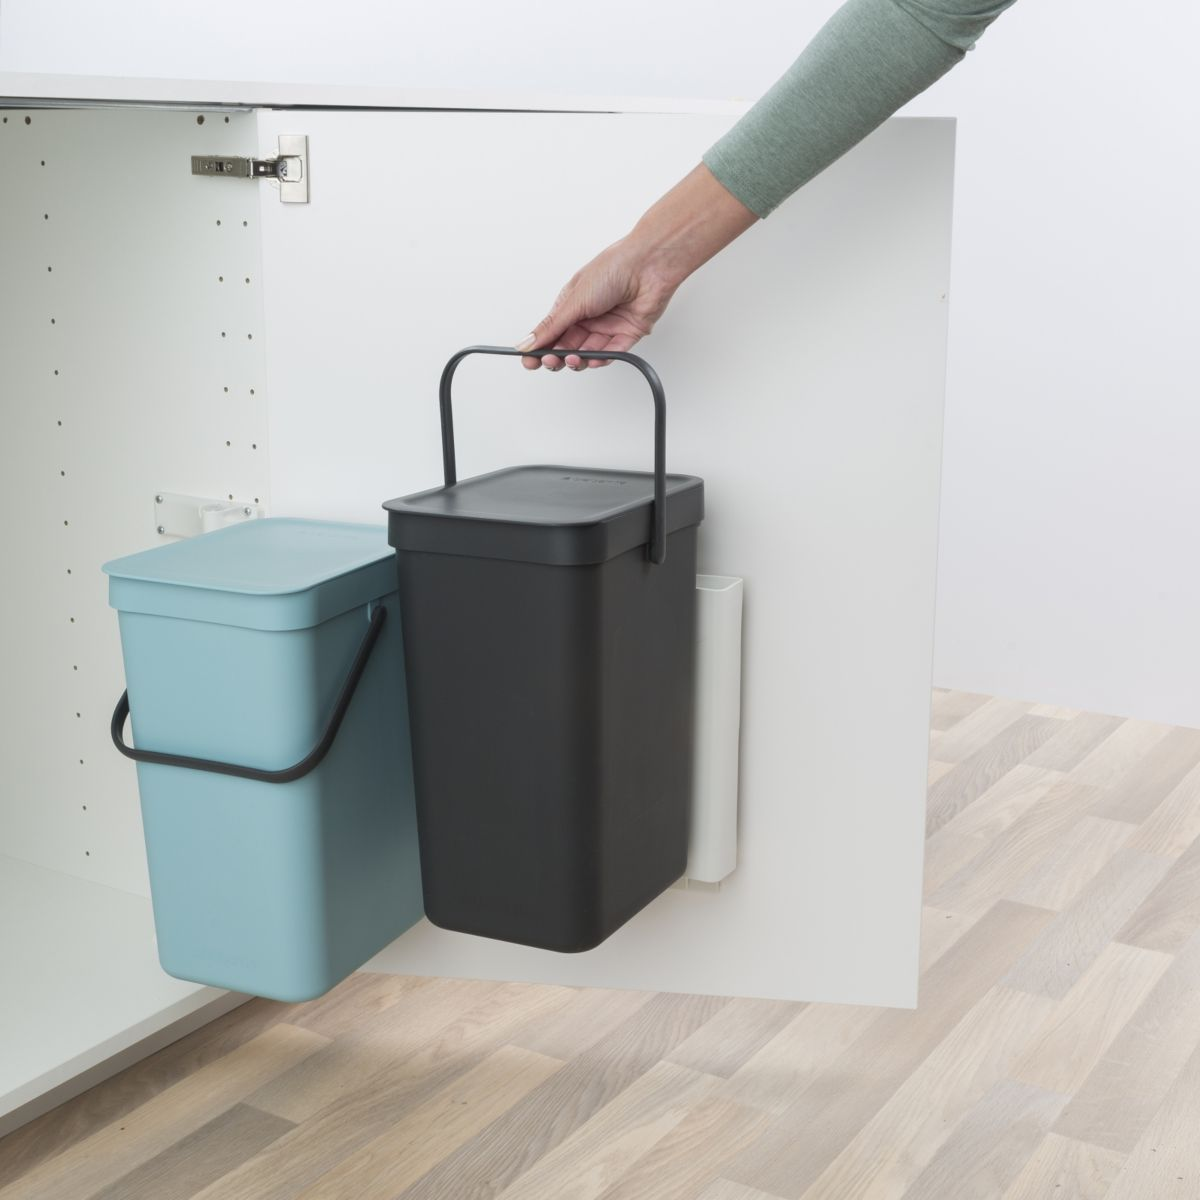 Poubelle manuelle BRABANTIA Built-in Bin Sort & Go 2x12L Mint & Grey